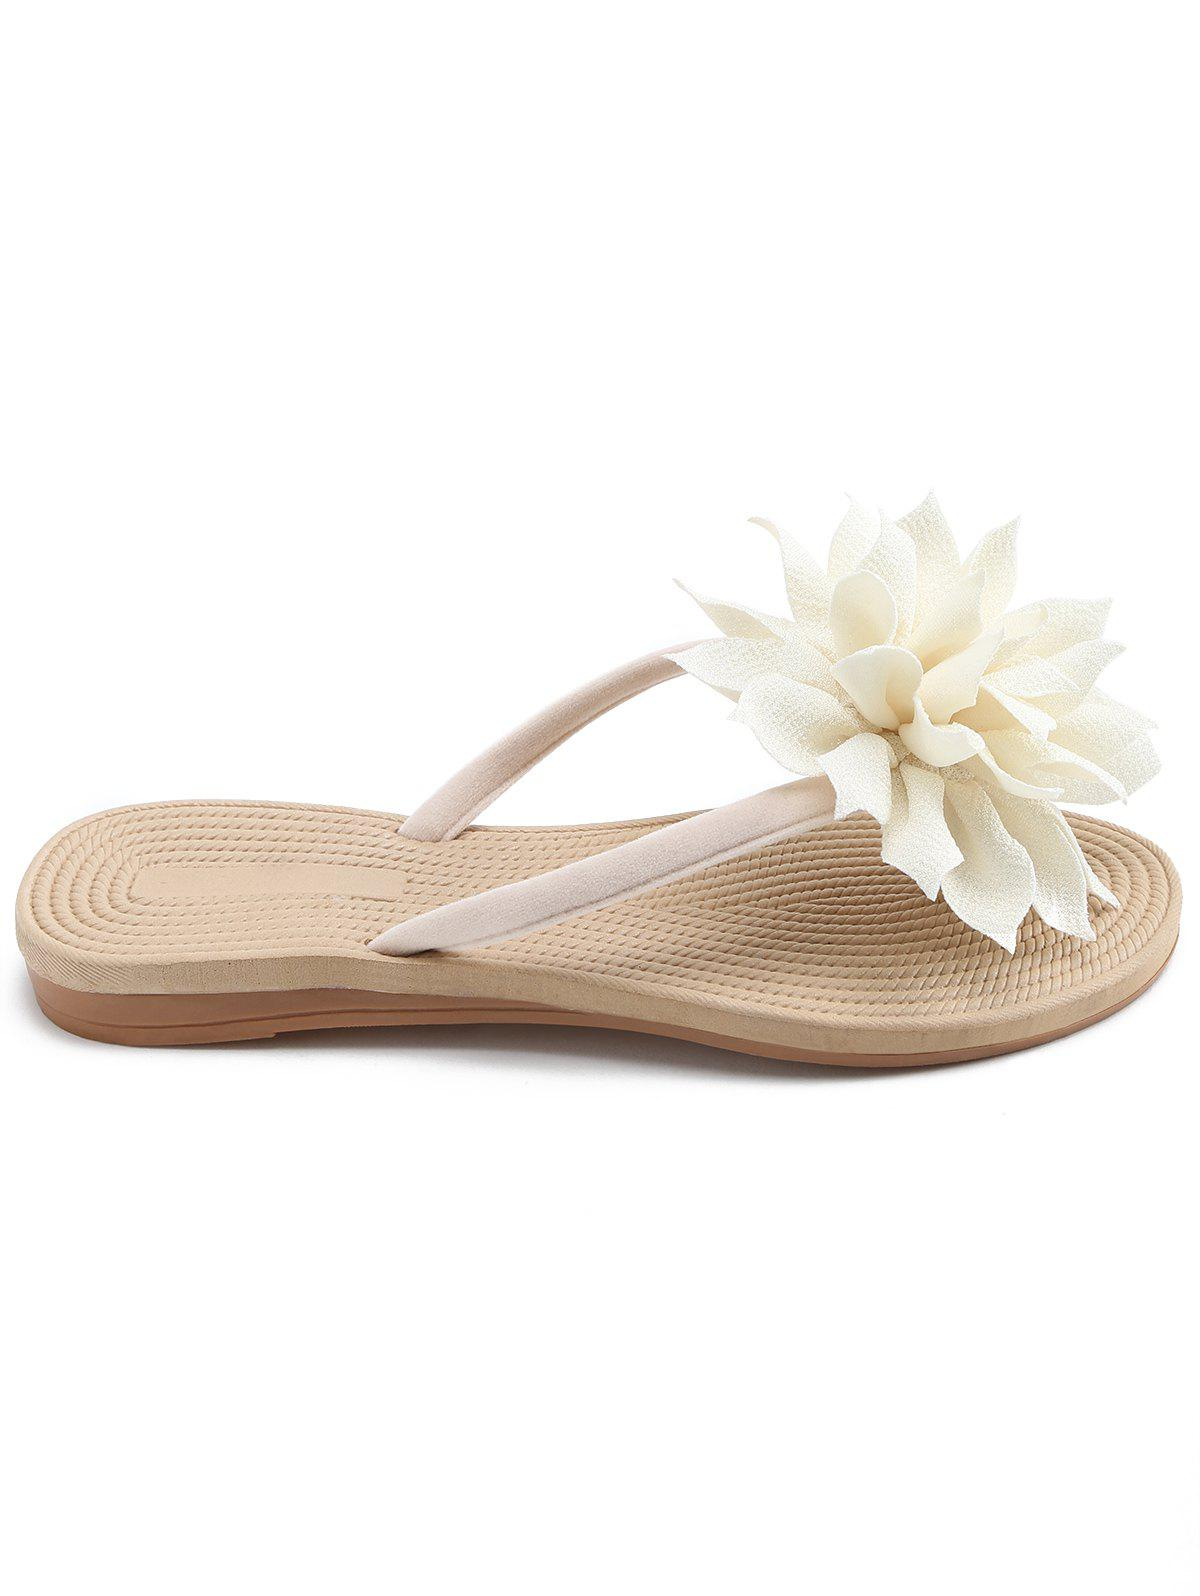 2018 flat heel flower flip flop for holiday off white in slippers flat heel flower flip flop for holiday off white 40 mightylinksfo